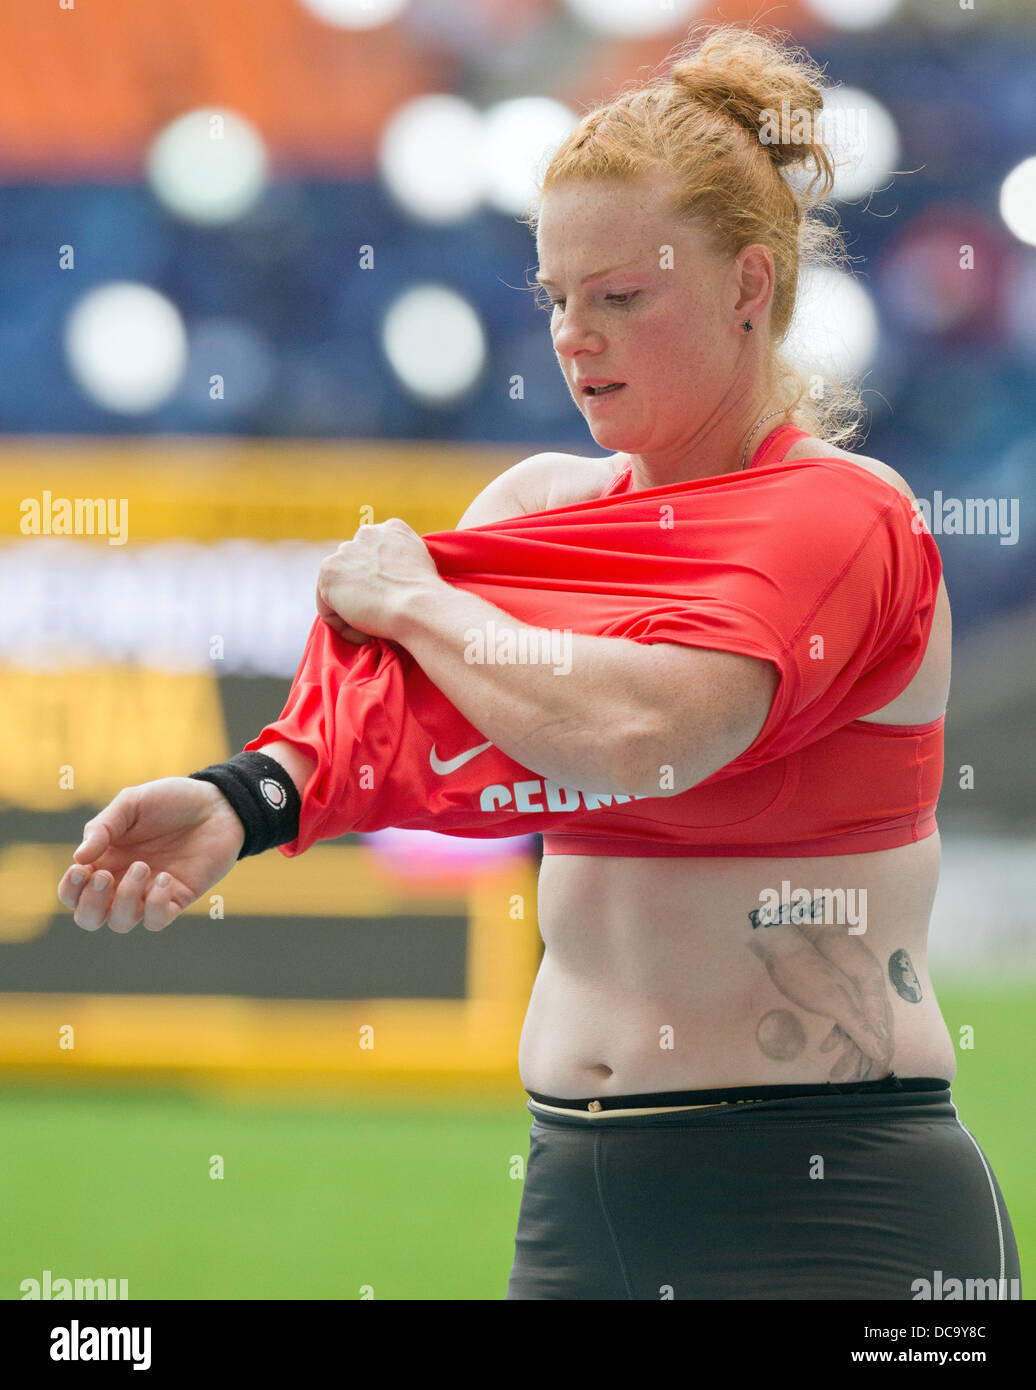 Moscow Russia 14th Aug 2013 Betty Heidler Of Germany Prepares For The Women S Hammer Throw Qualification At The 14th Iaaf World Championships In Athletics At Luzhniki Stadium In Moscow Russia 14 August